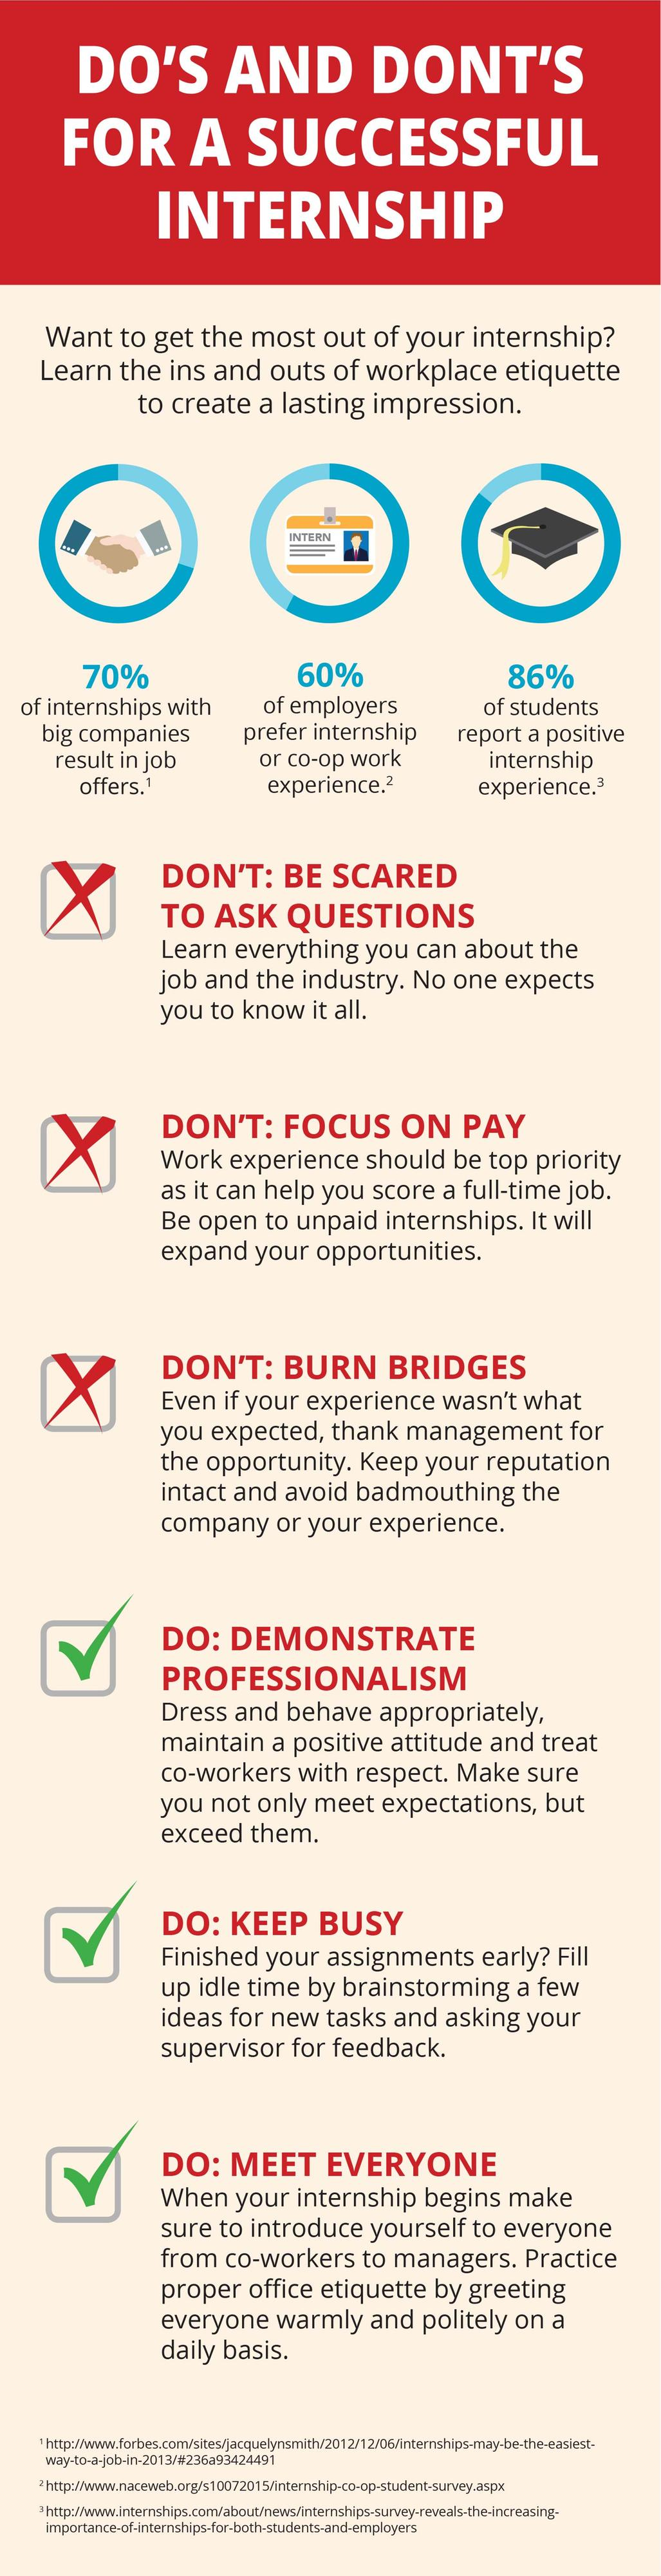 Do's and Dont's For A Successful Internship - Infographic